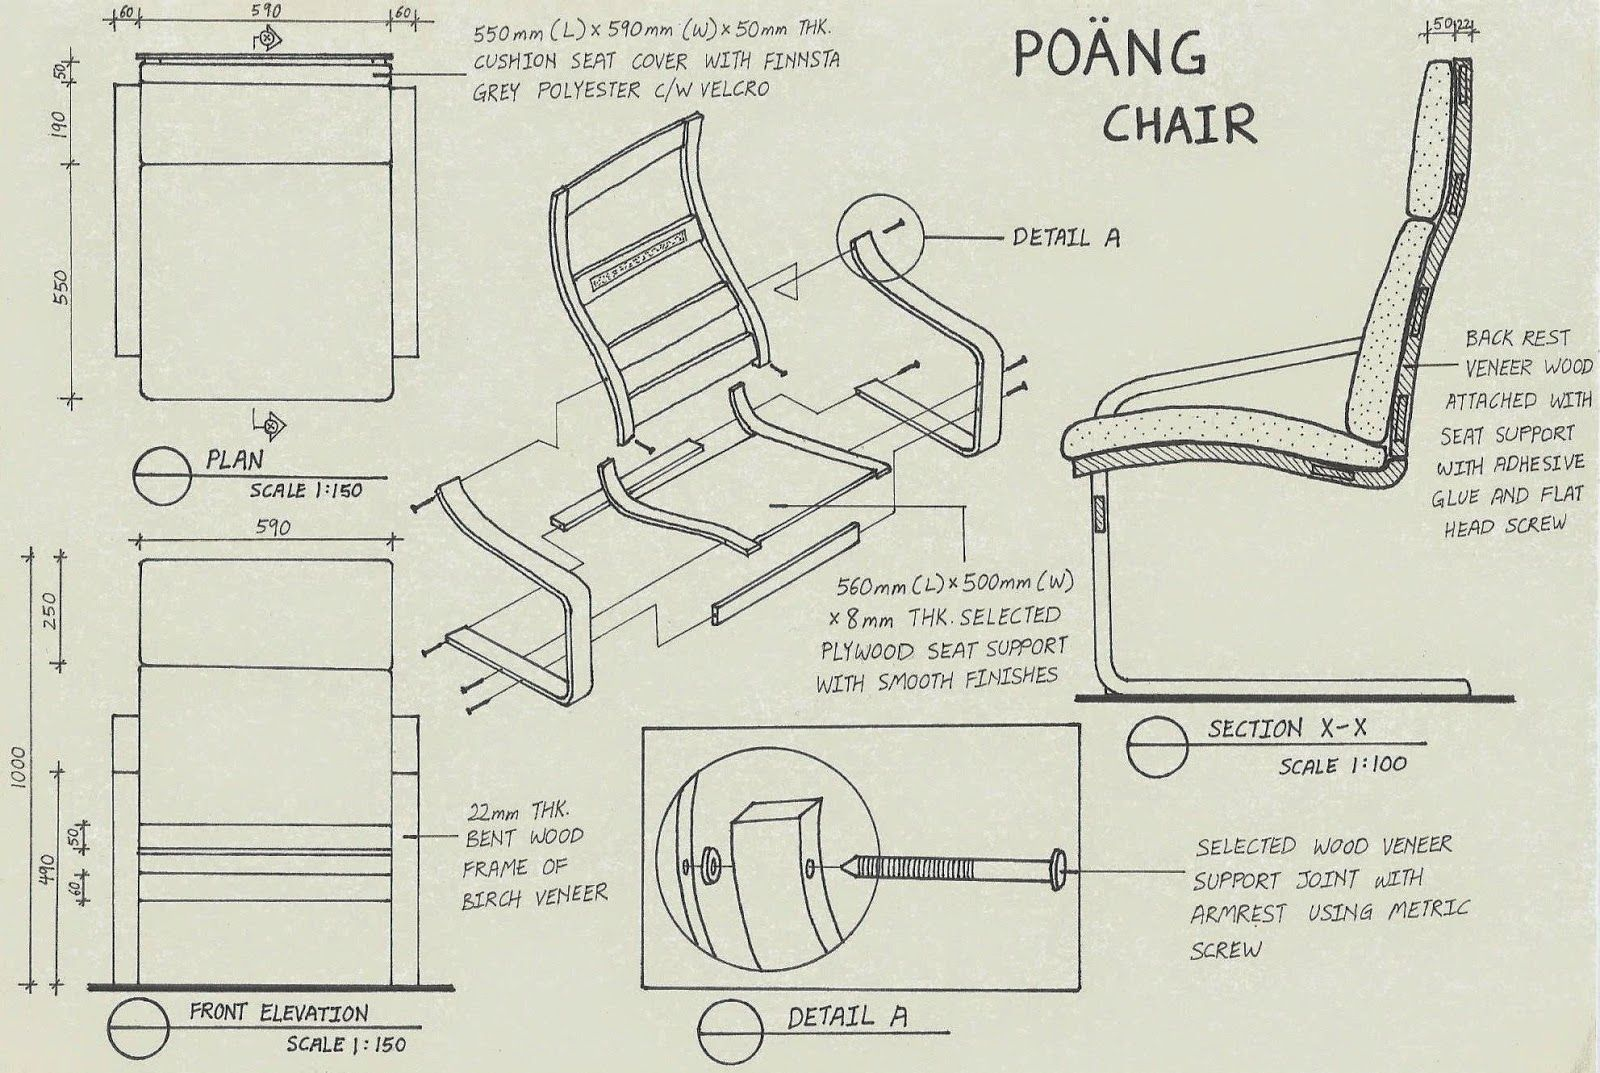 Tremendous Yii Min In Design Assembly Drawing Poang Chair By Ikea In Spiritservingveterans Wood Chair Design Ideas Spiritservingveteransorg